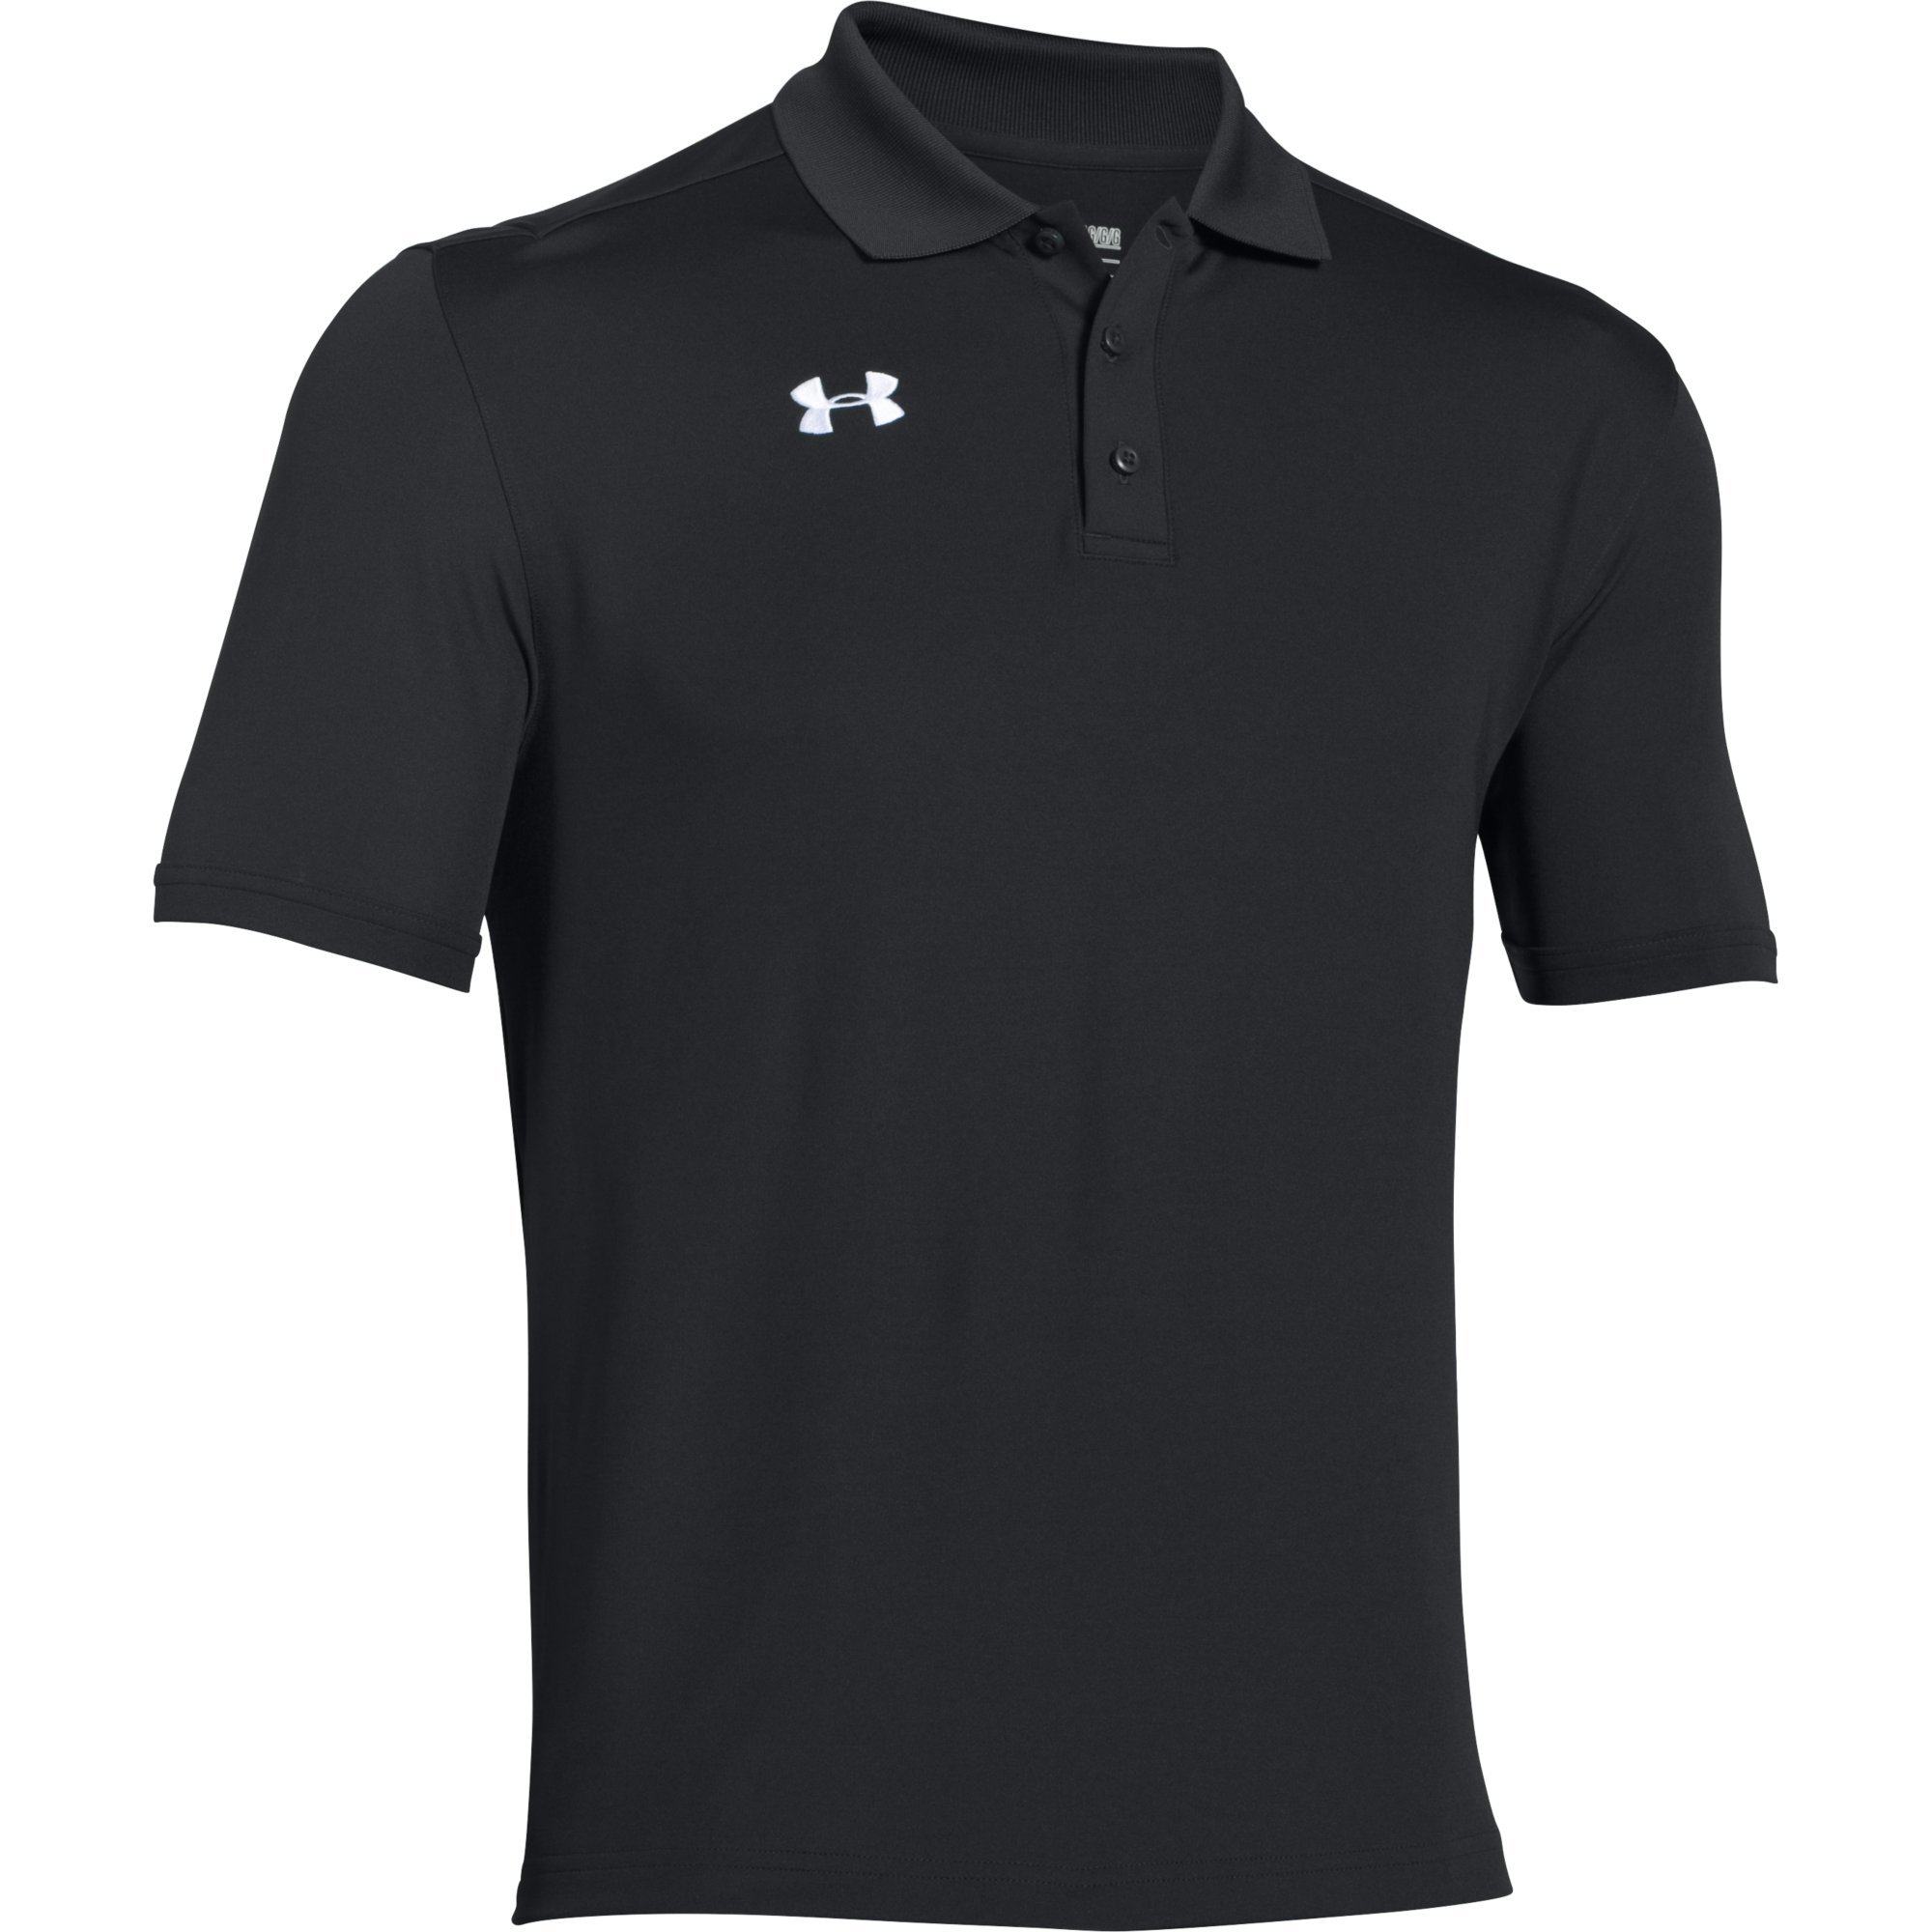 Under Armour Team Armour Men's Golf Polo (Black, Large) by Under Armour (Image #1)